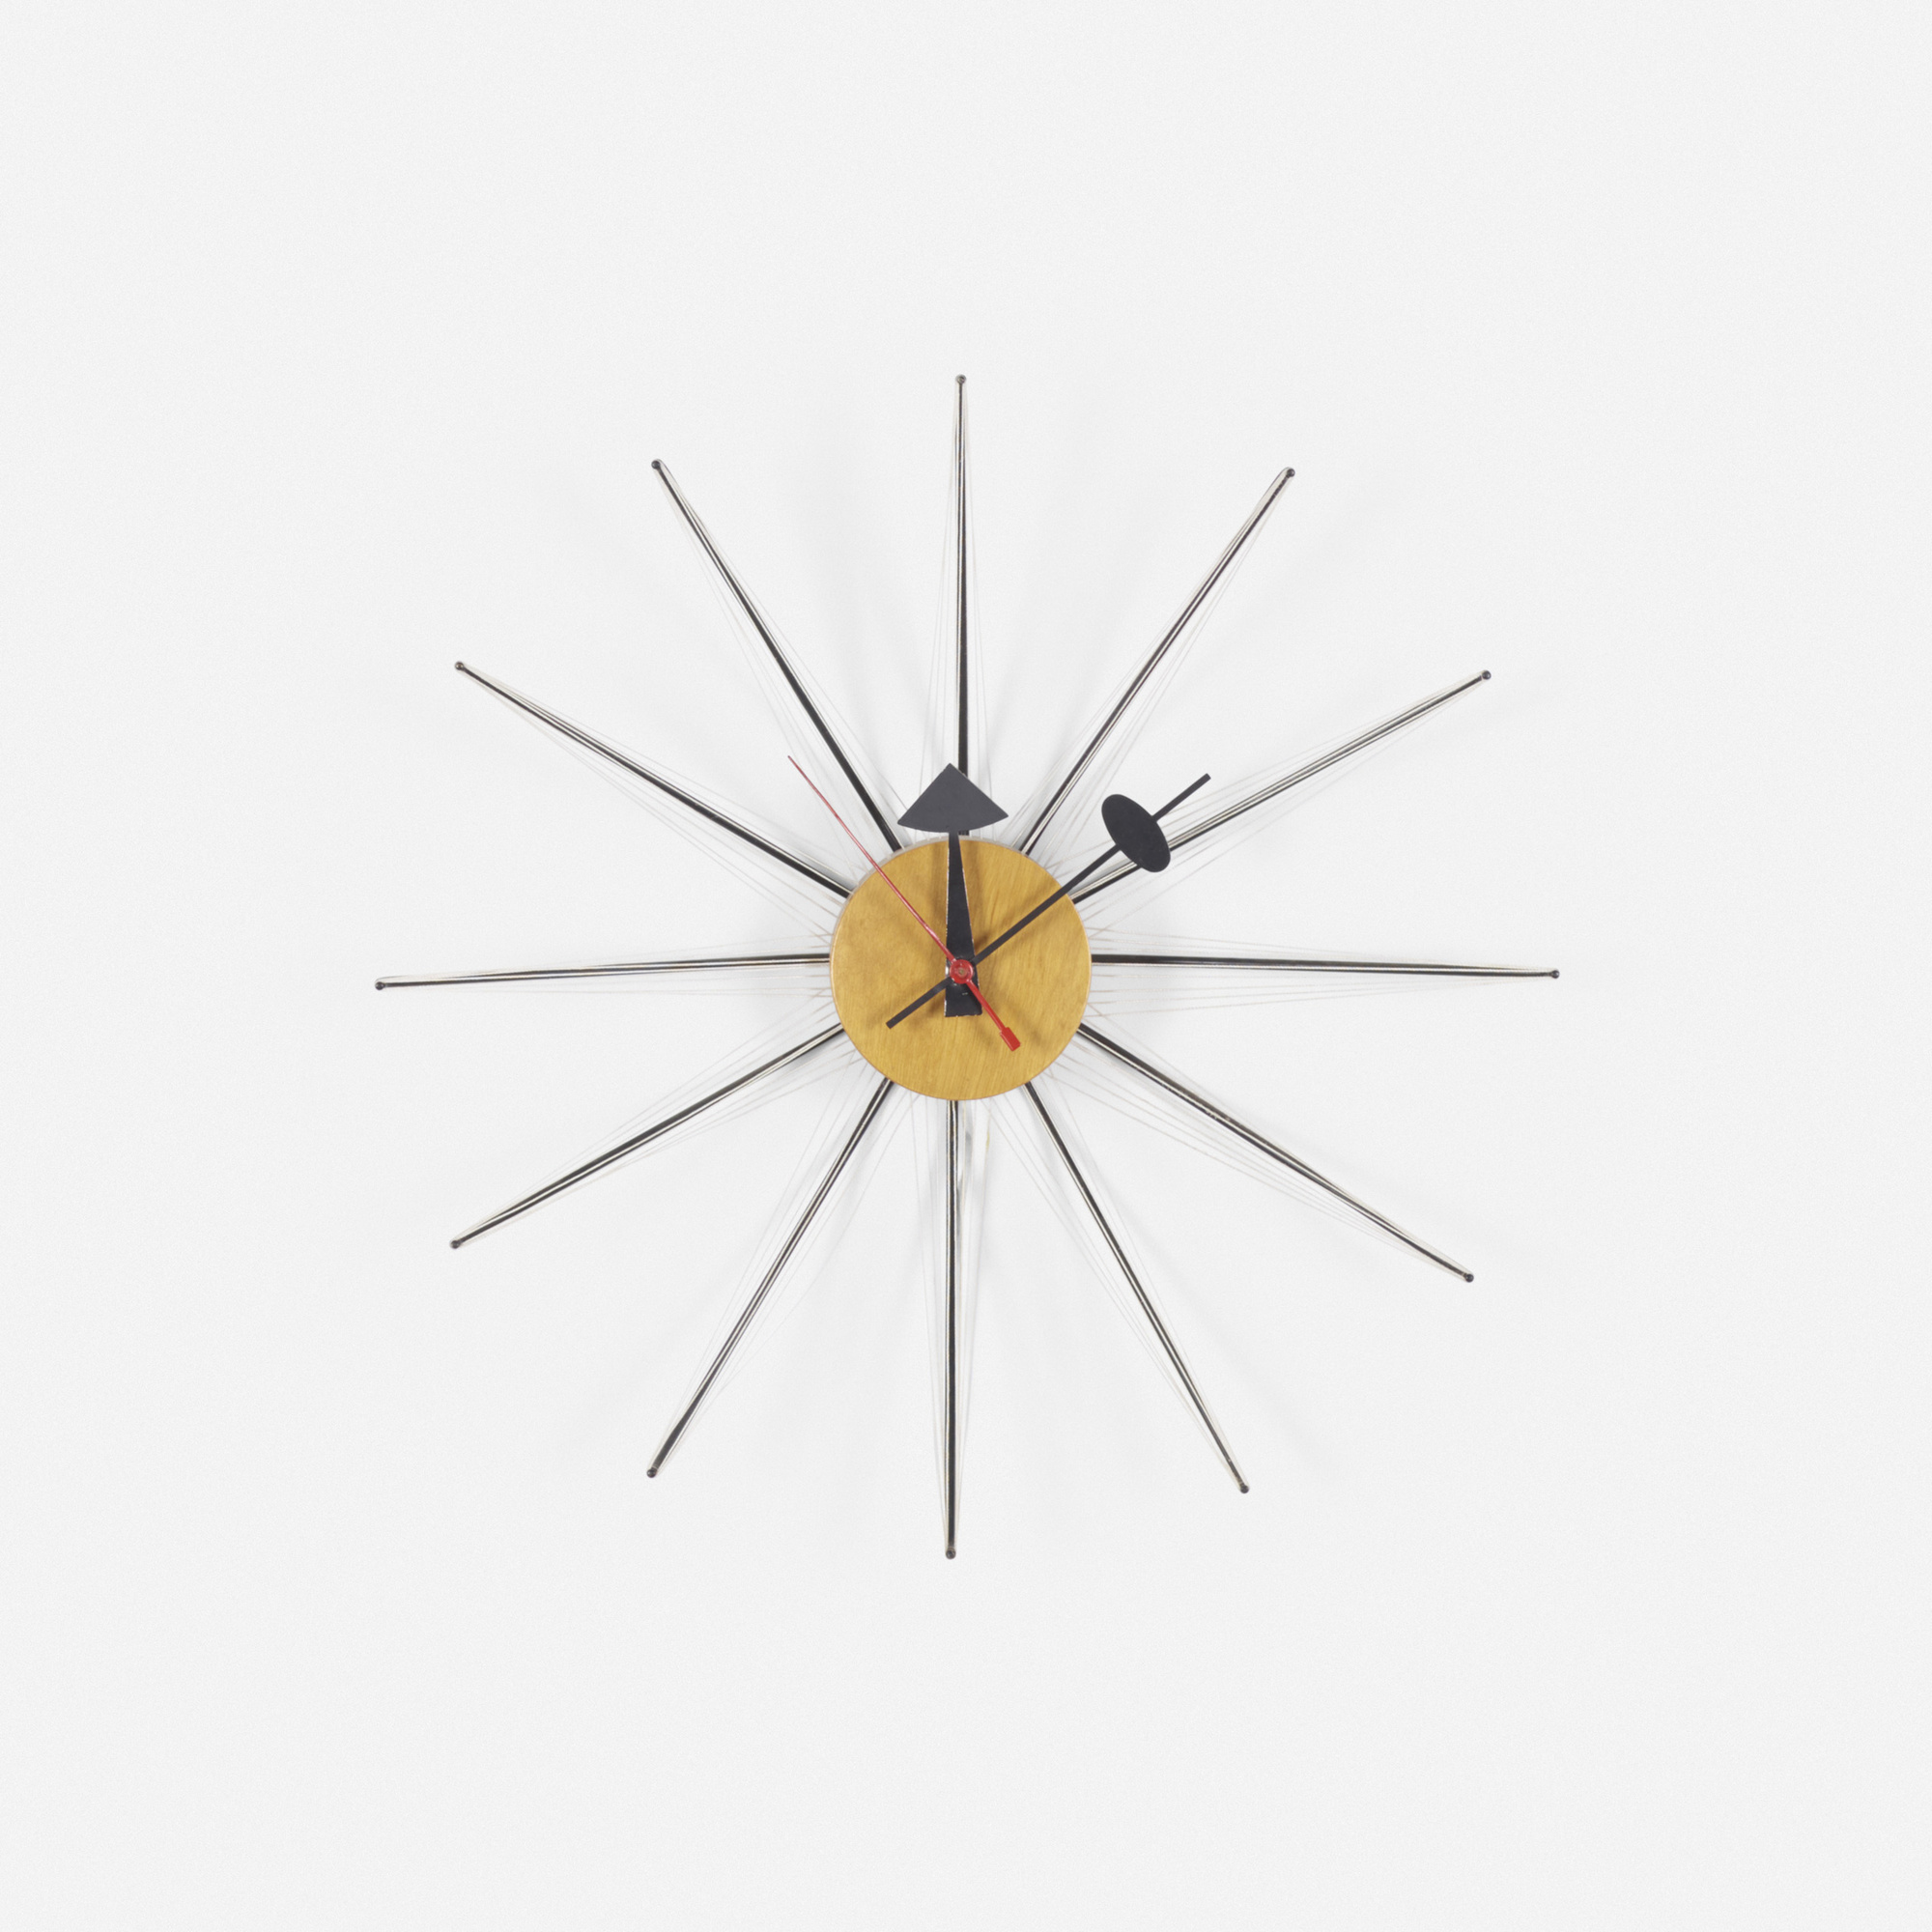 101 george nelson associates string wall clock model 2214b 101 george nelson associates string wall clock model 2214b 1 of ccuart Choice Image